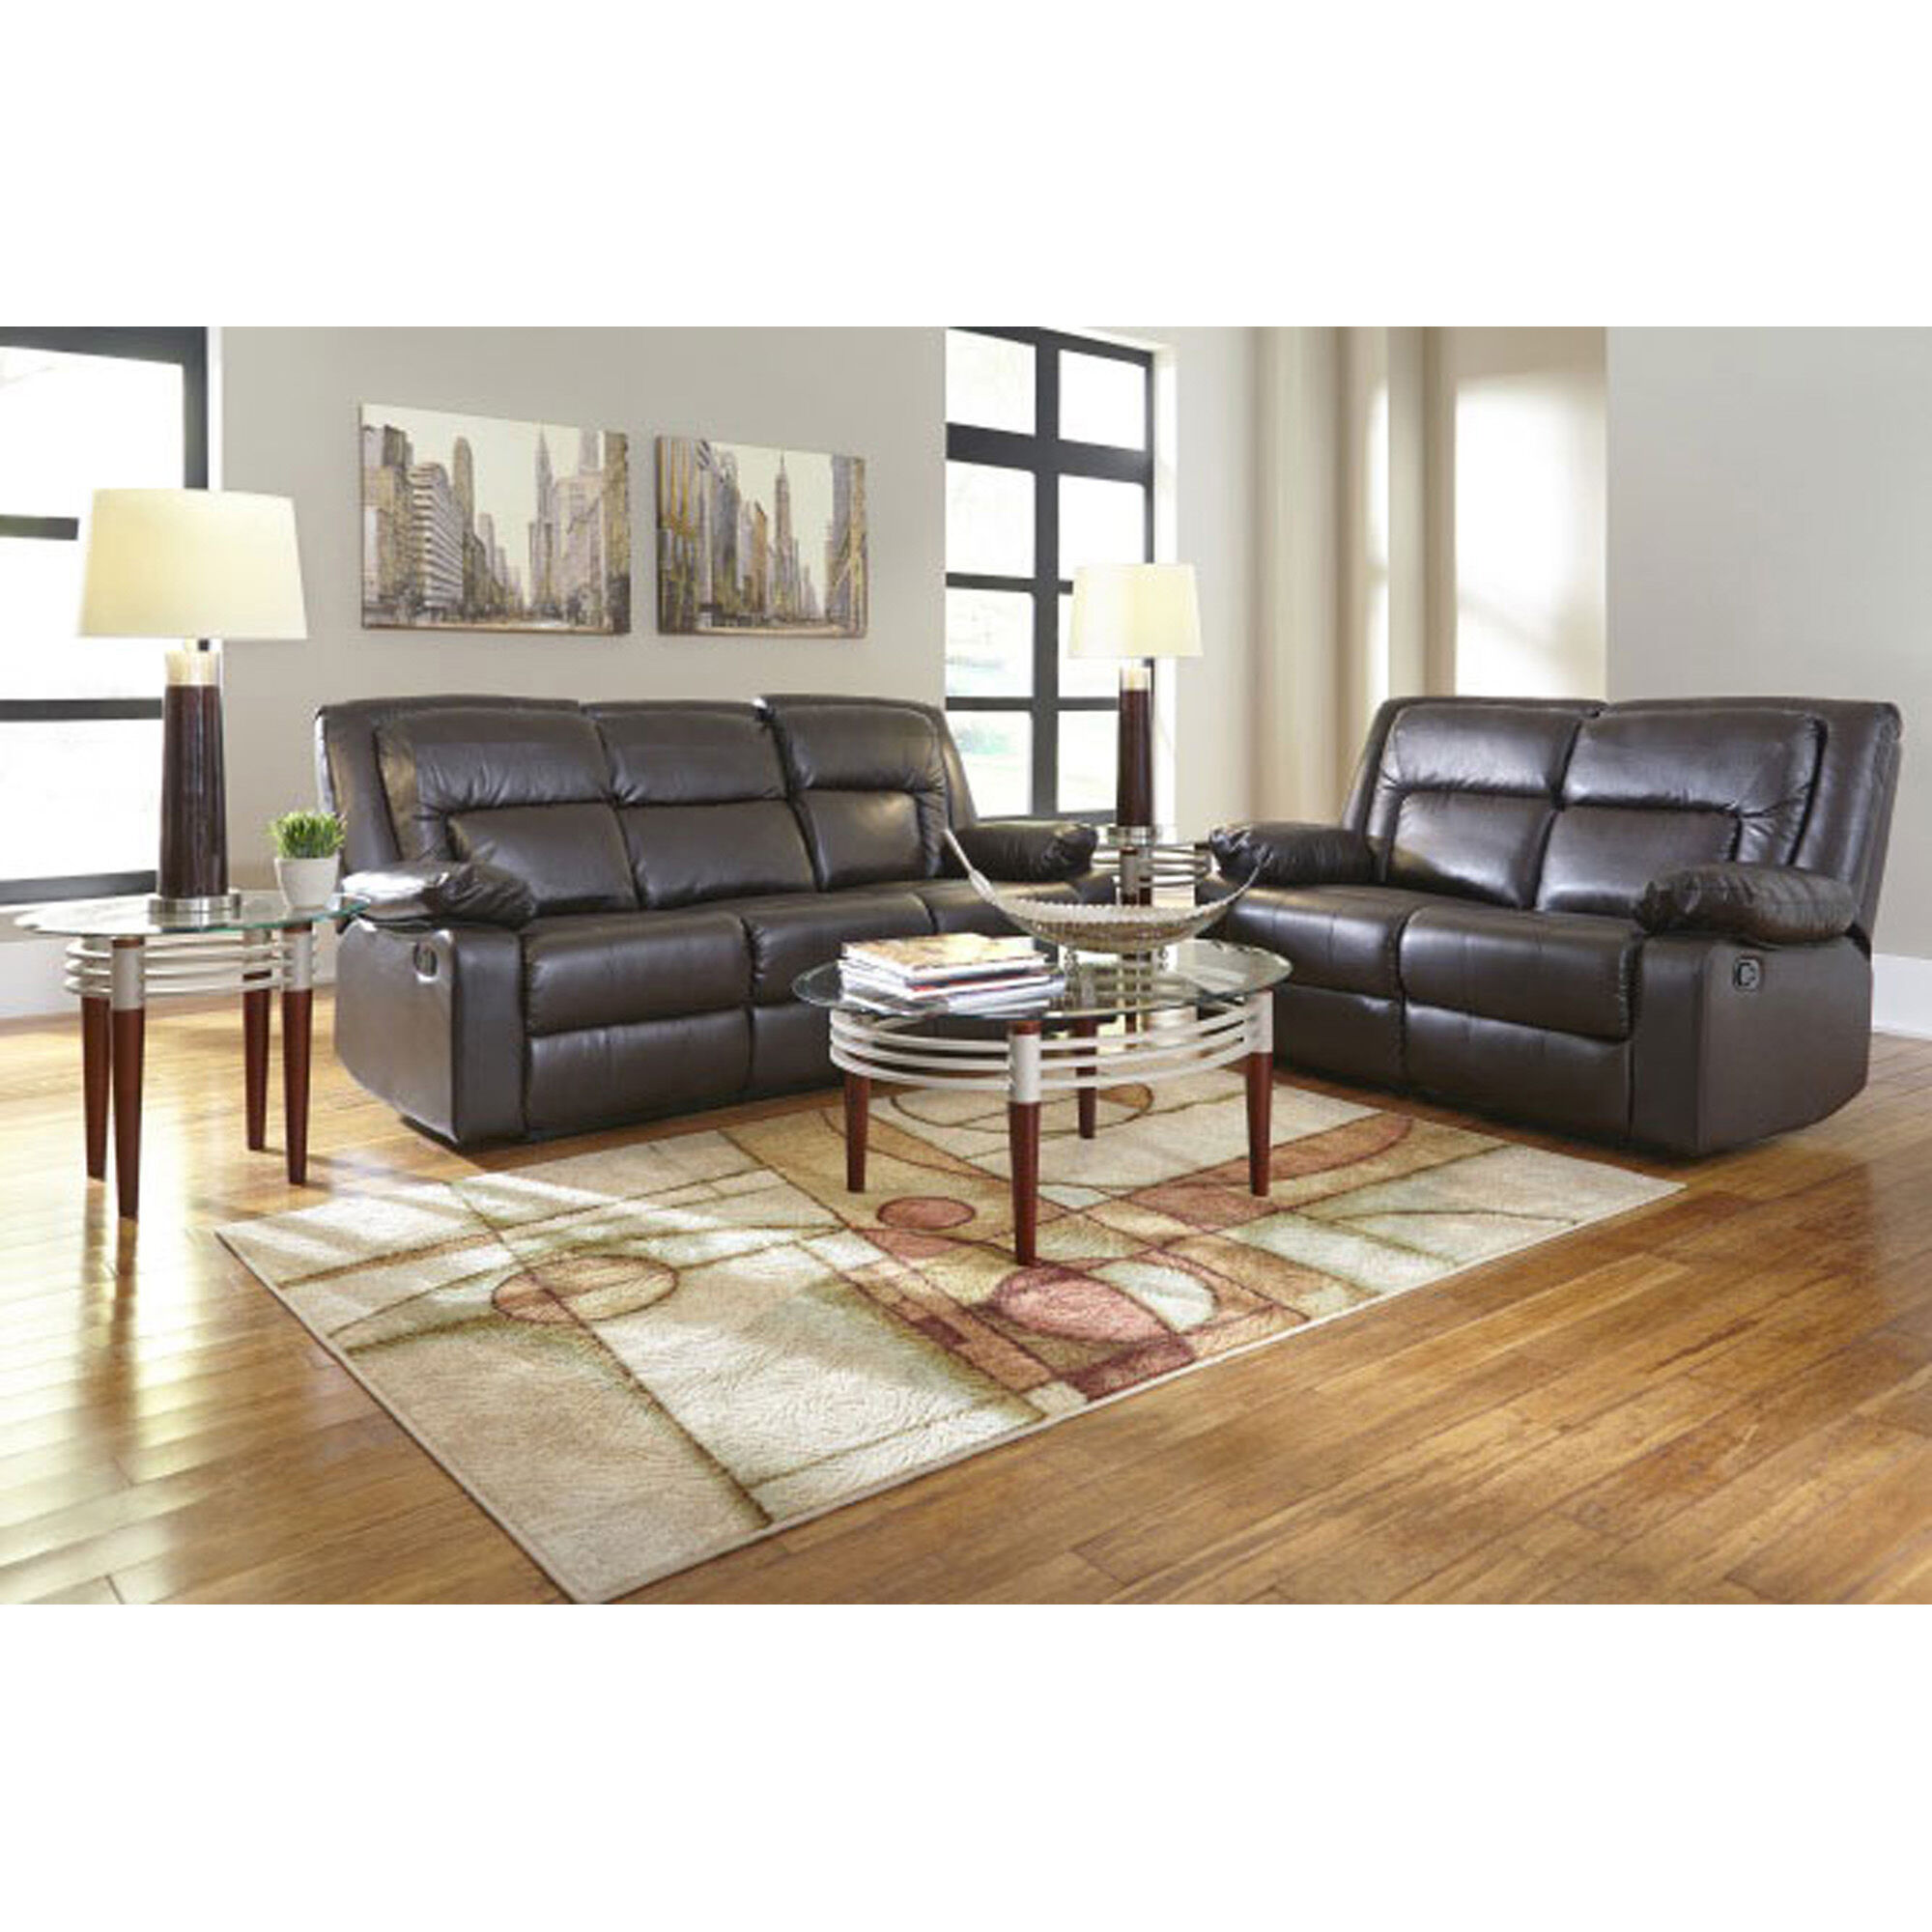 7 Piece Affinity Living Room Collection